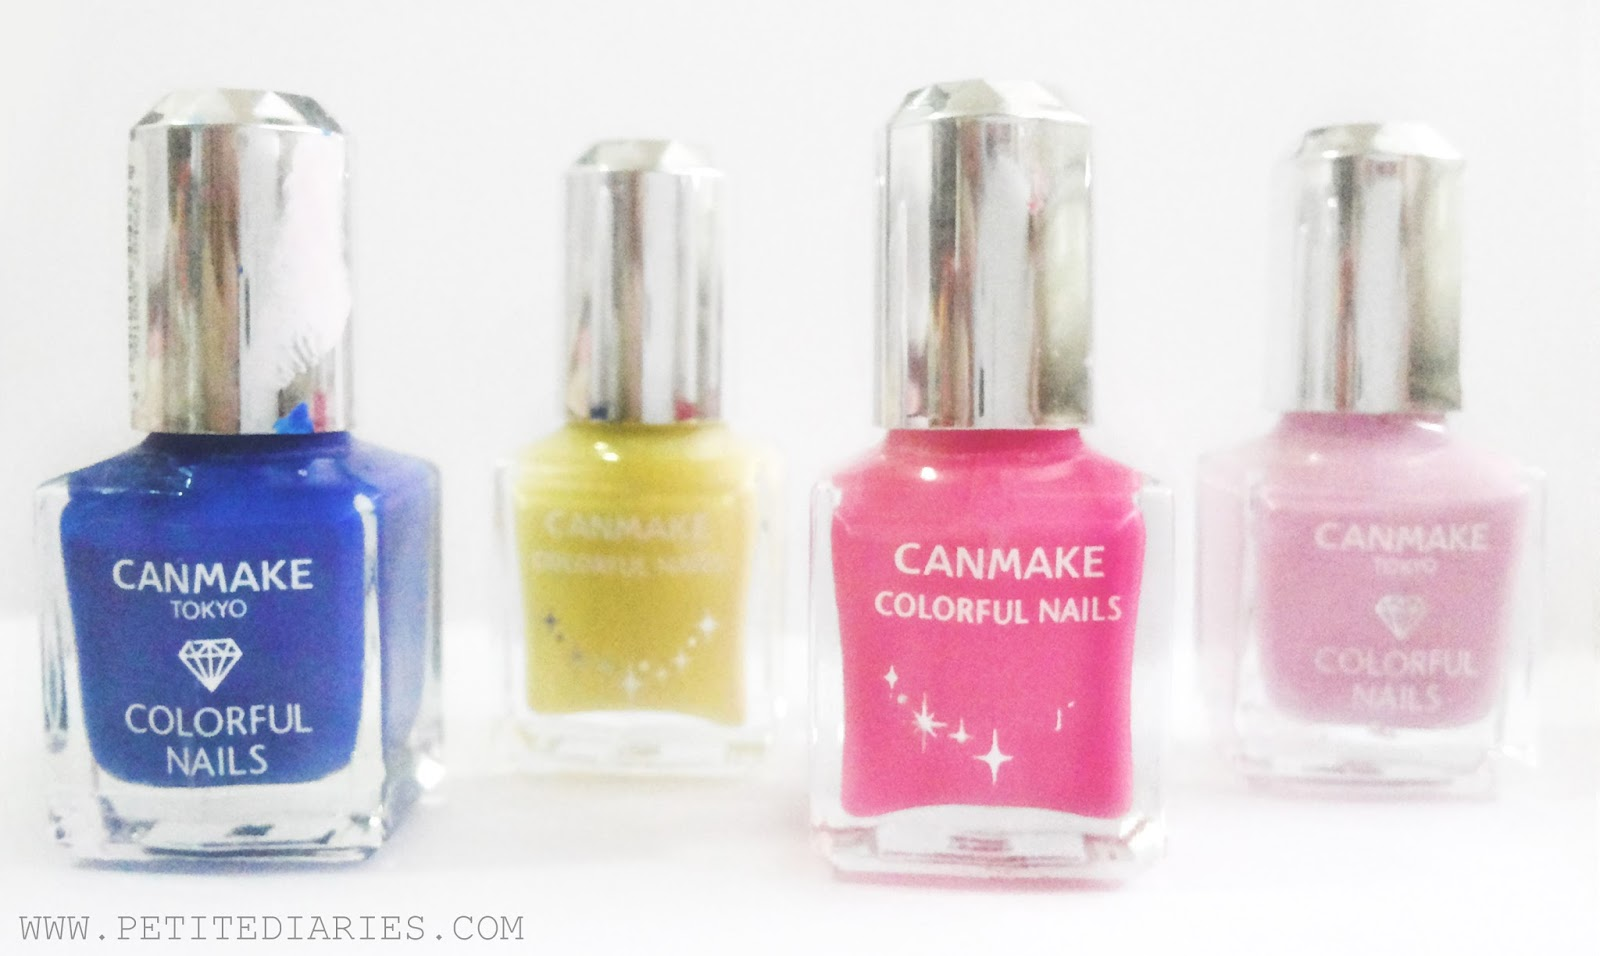 canmake tokyo colorful nails